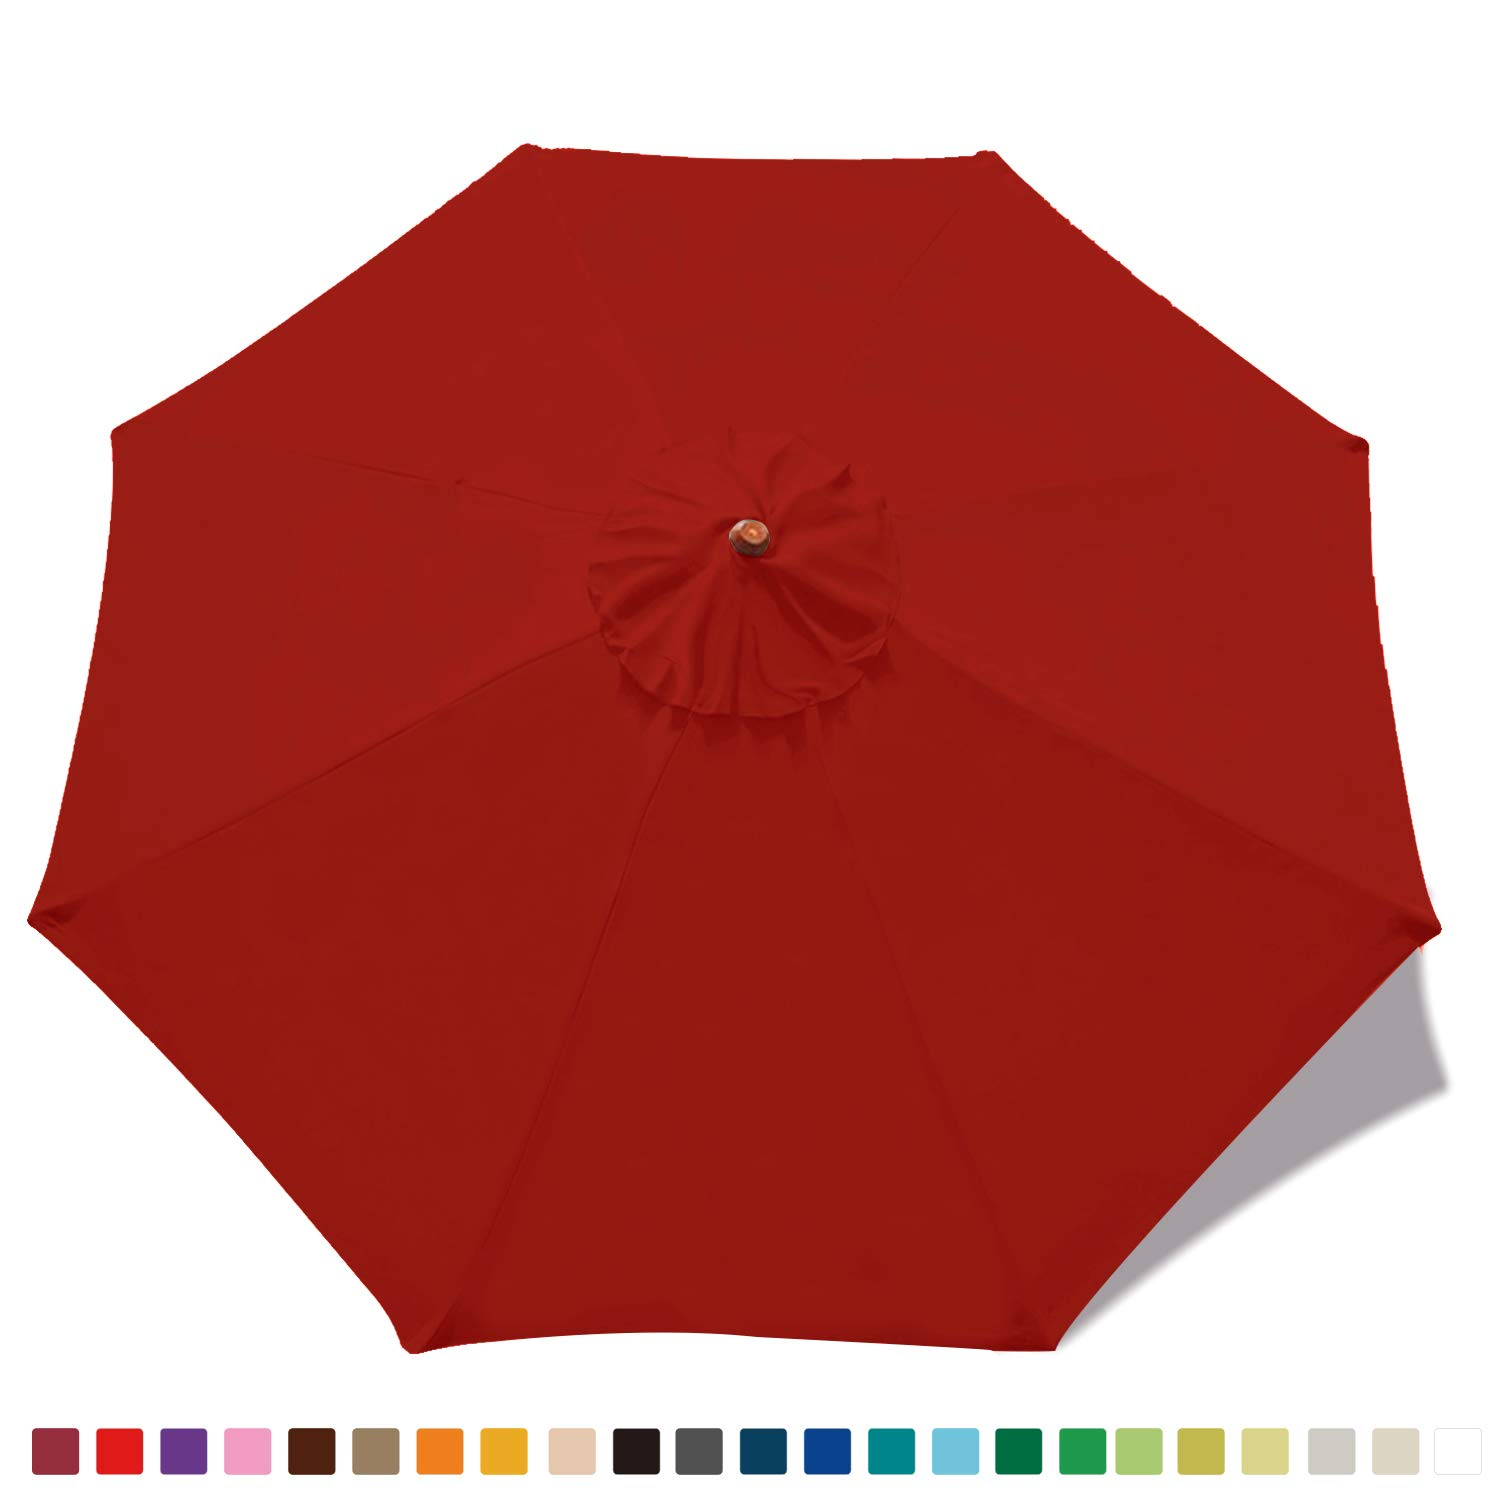 ABCCANOPY 9ft Market Umbrella Replacement Patio Umbrella Top Outdoor Umbrella Canopy 8 Ribs 23 Colors